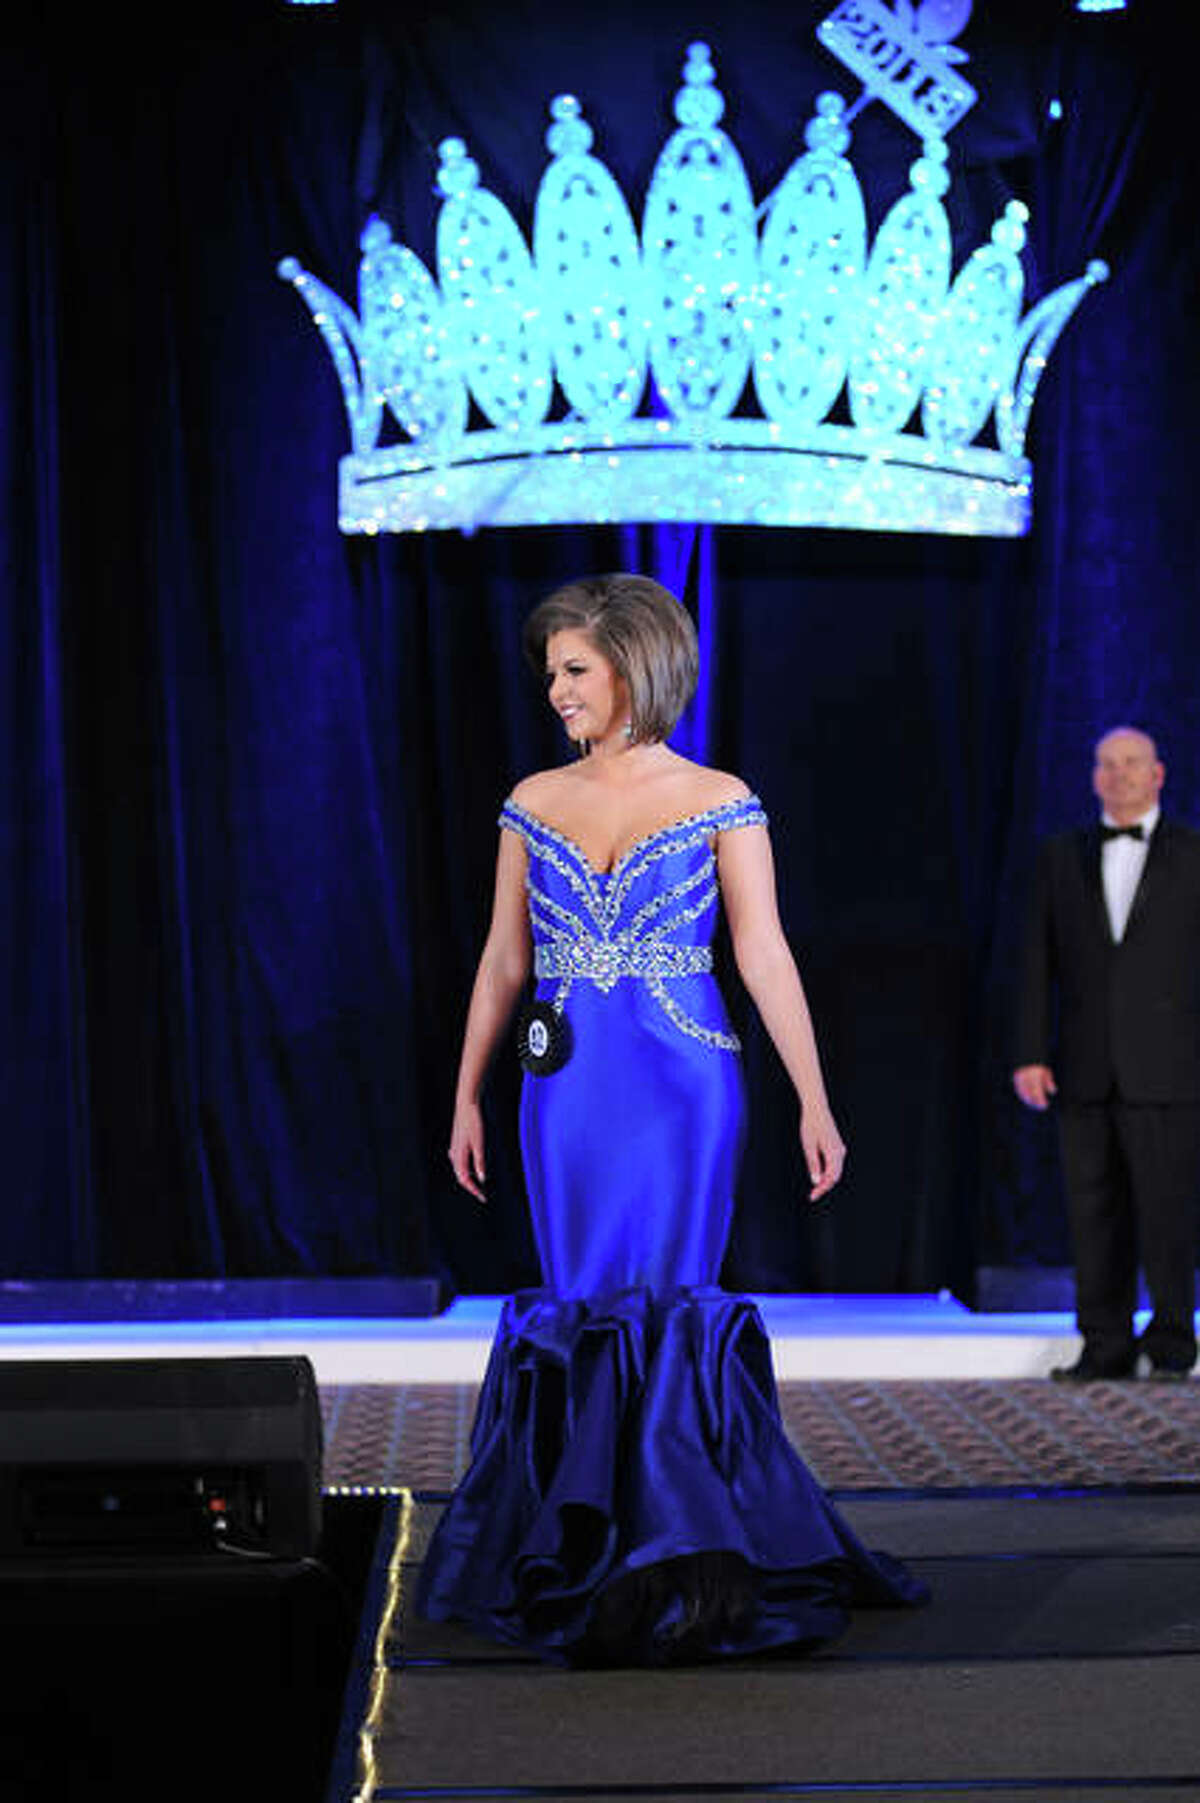 Miss Greene County Katelyn Dunlap during the evening gown competition at the pageant.